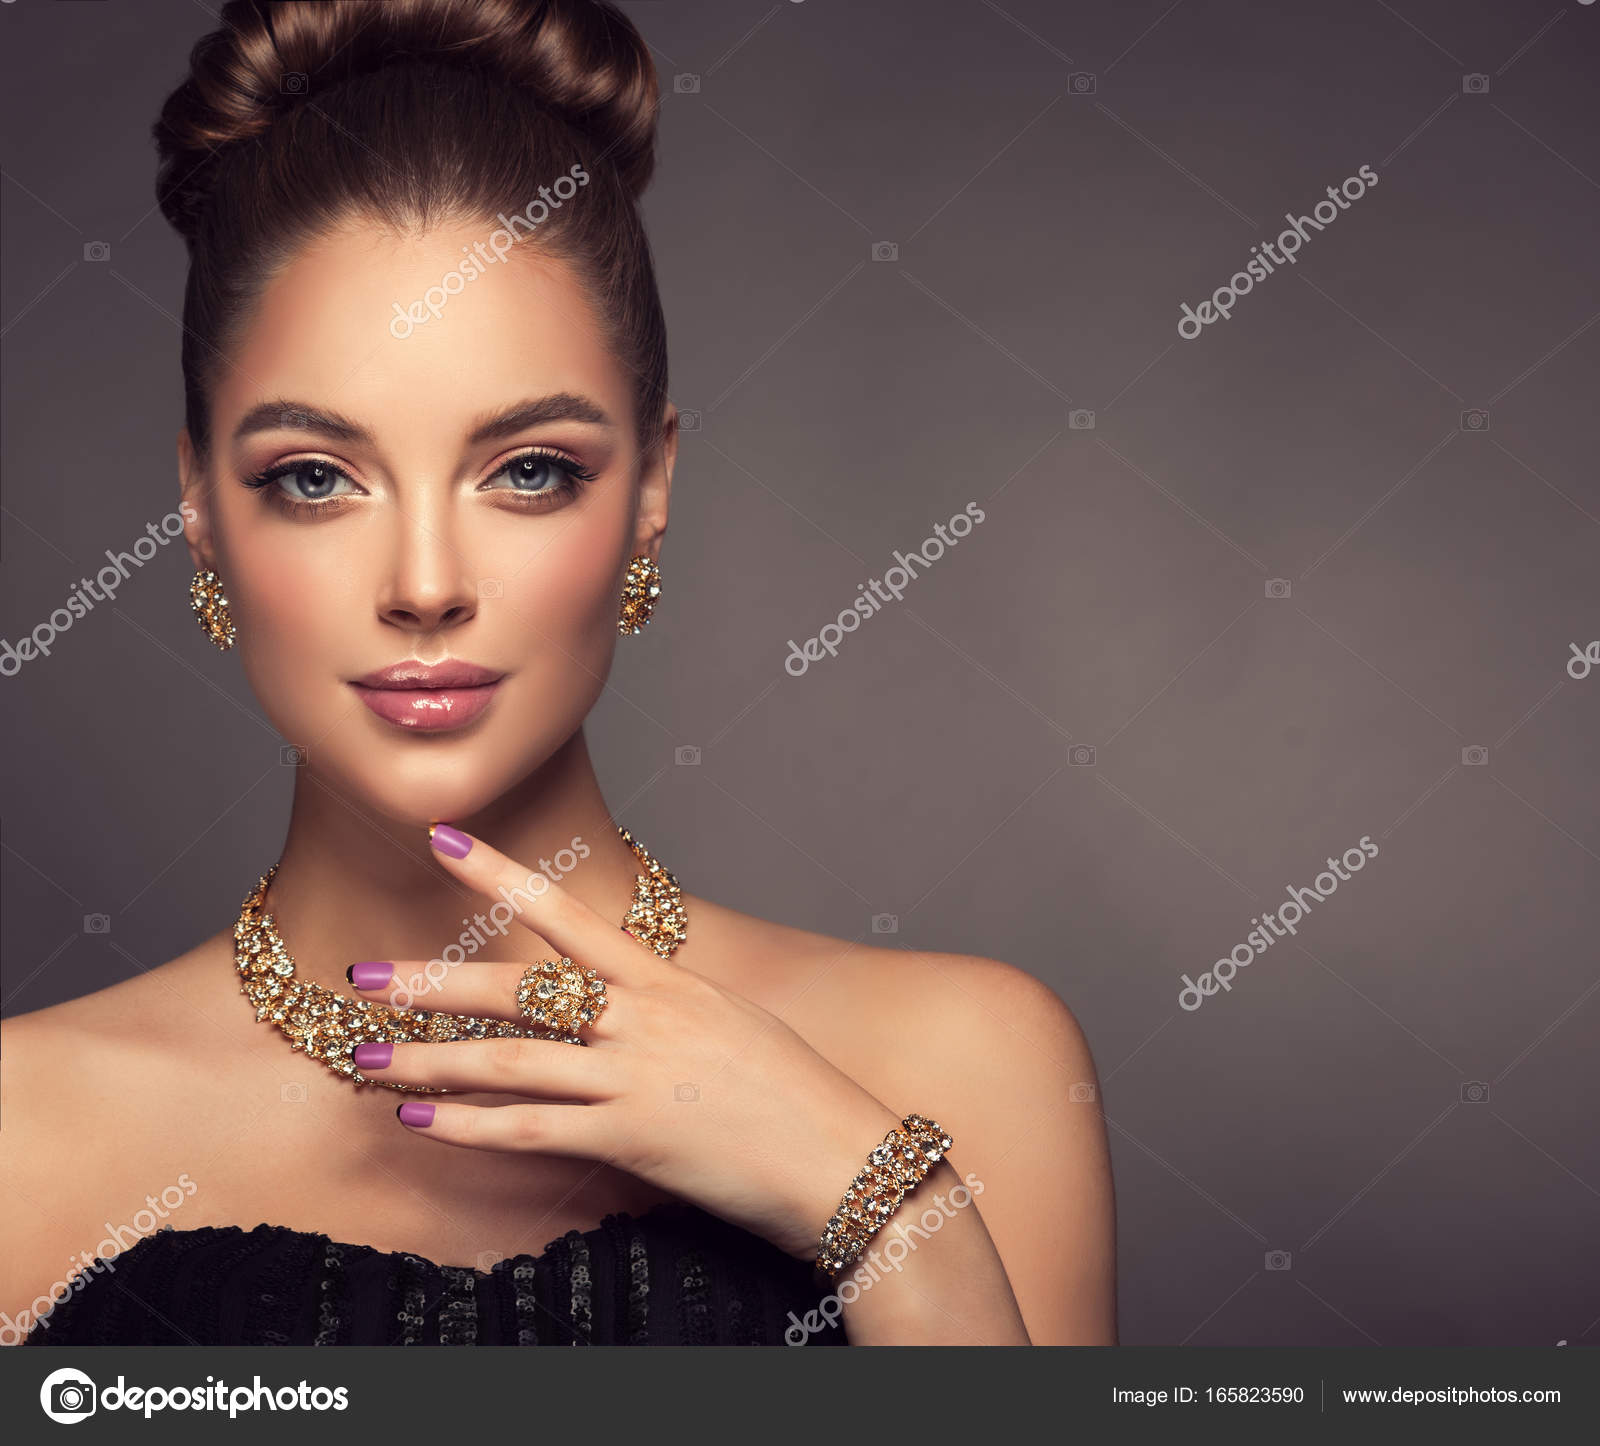 c9e7c49bfc7 Beautiful girl with jewelry . A set of jewelry for woman ,necklace ,earrings  and bracelet. Beauty and accessories. — Photo by Sofia_Zhuravets